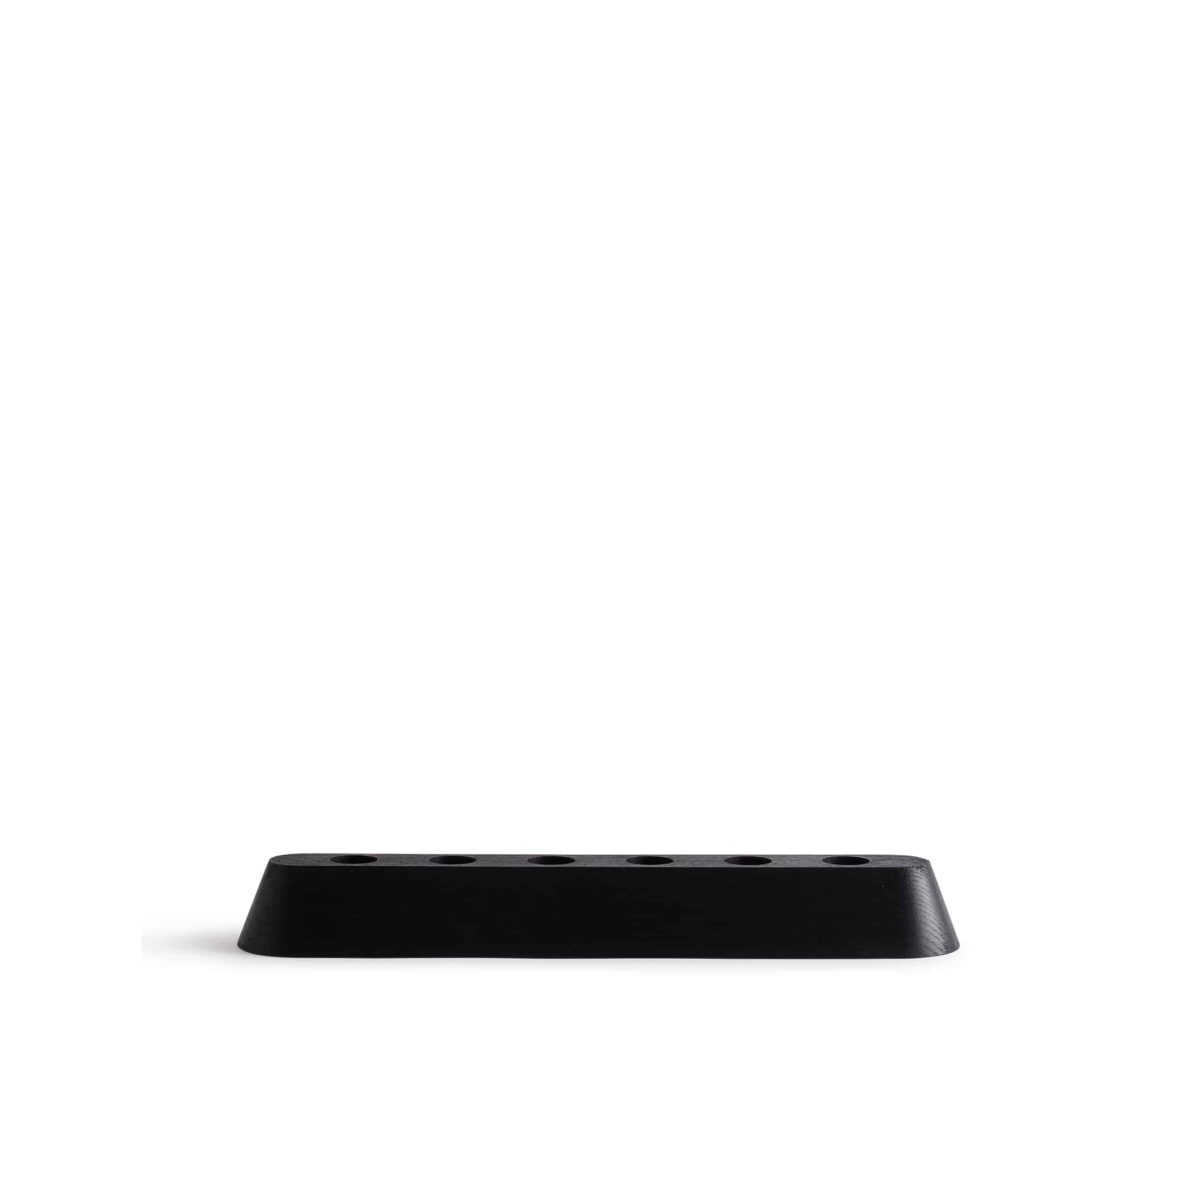 Candle Holder Black Long-Another-Country– Photo Credit Yeshen Venema-web ready -21.11.185296